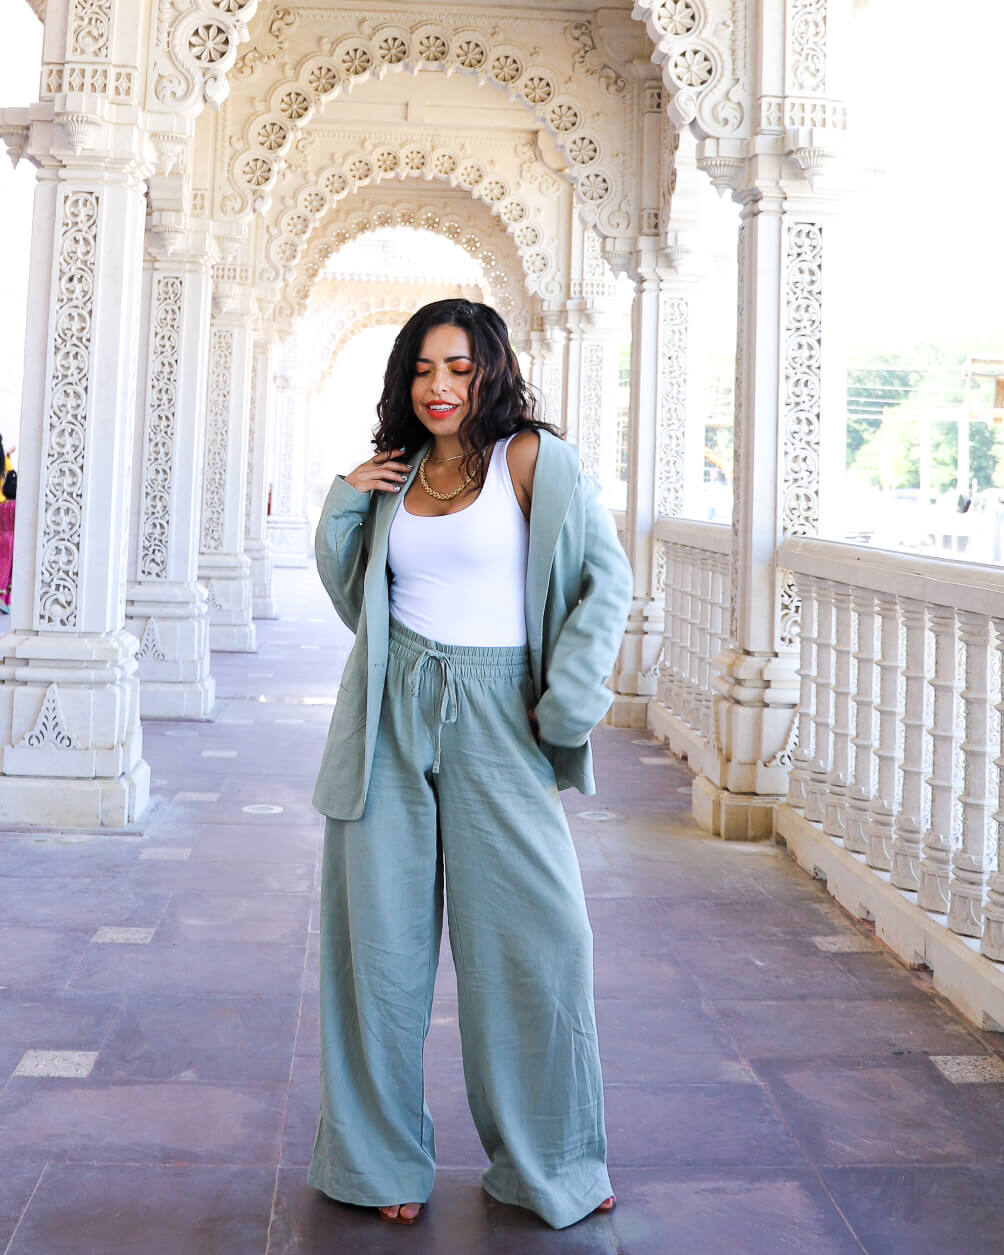 Petite women wearing a matching wide leg pants and blazer set outside in a temple